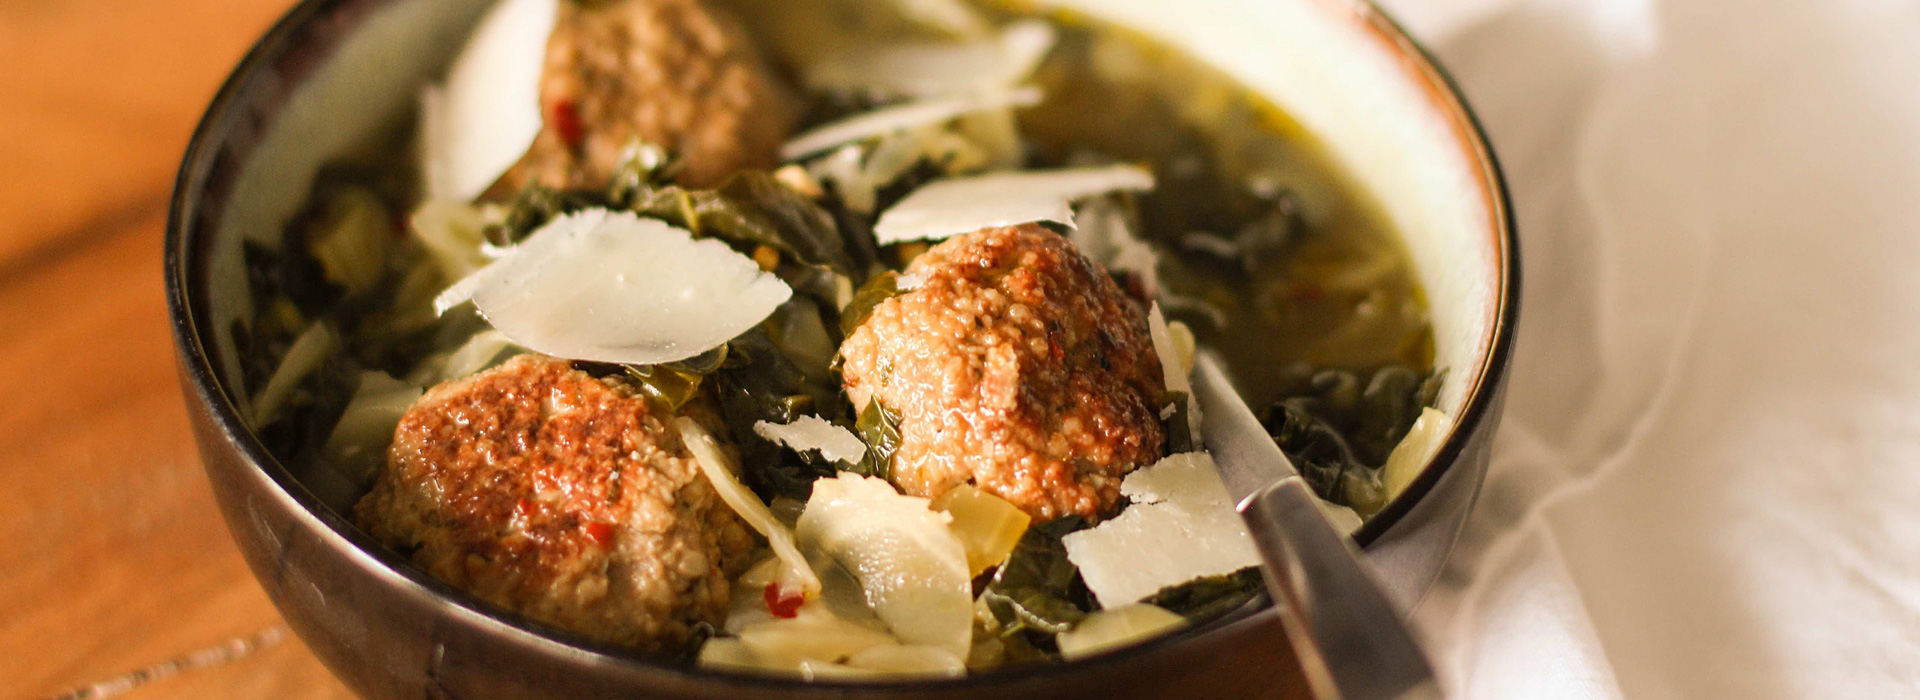 Italian Wedding Soup with Chicken Meatballs - Sunsweet ...